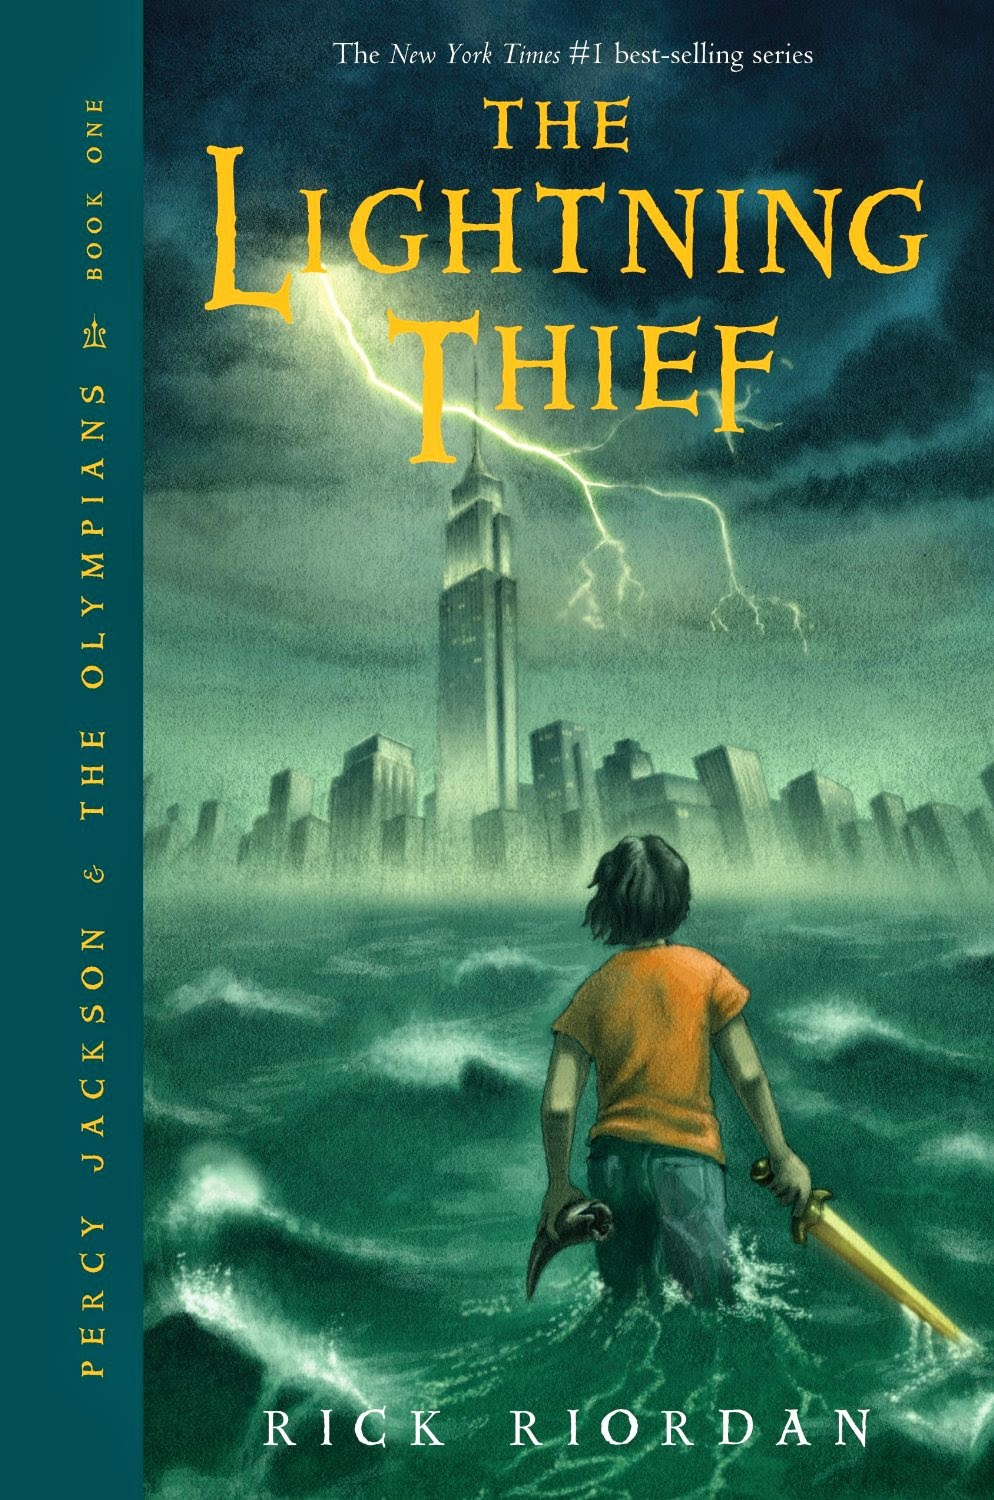 Book Review: Percy Jackson & The Lightning Thief (Book 1), By Rick Riordan